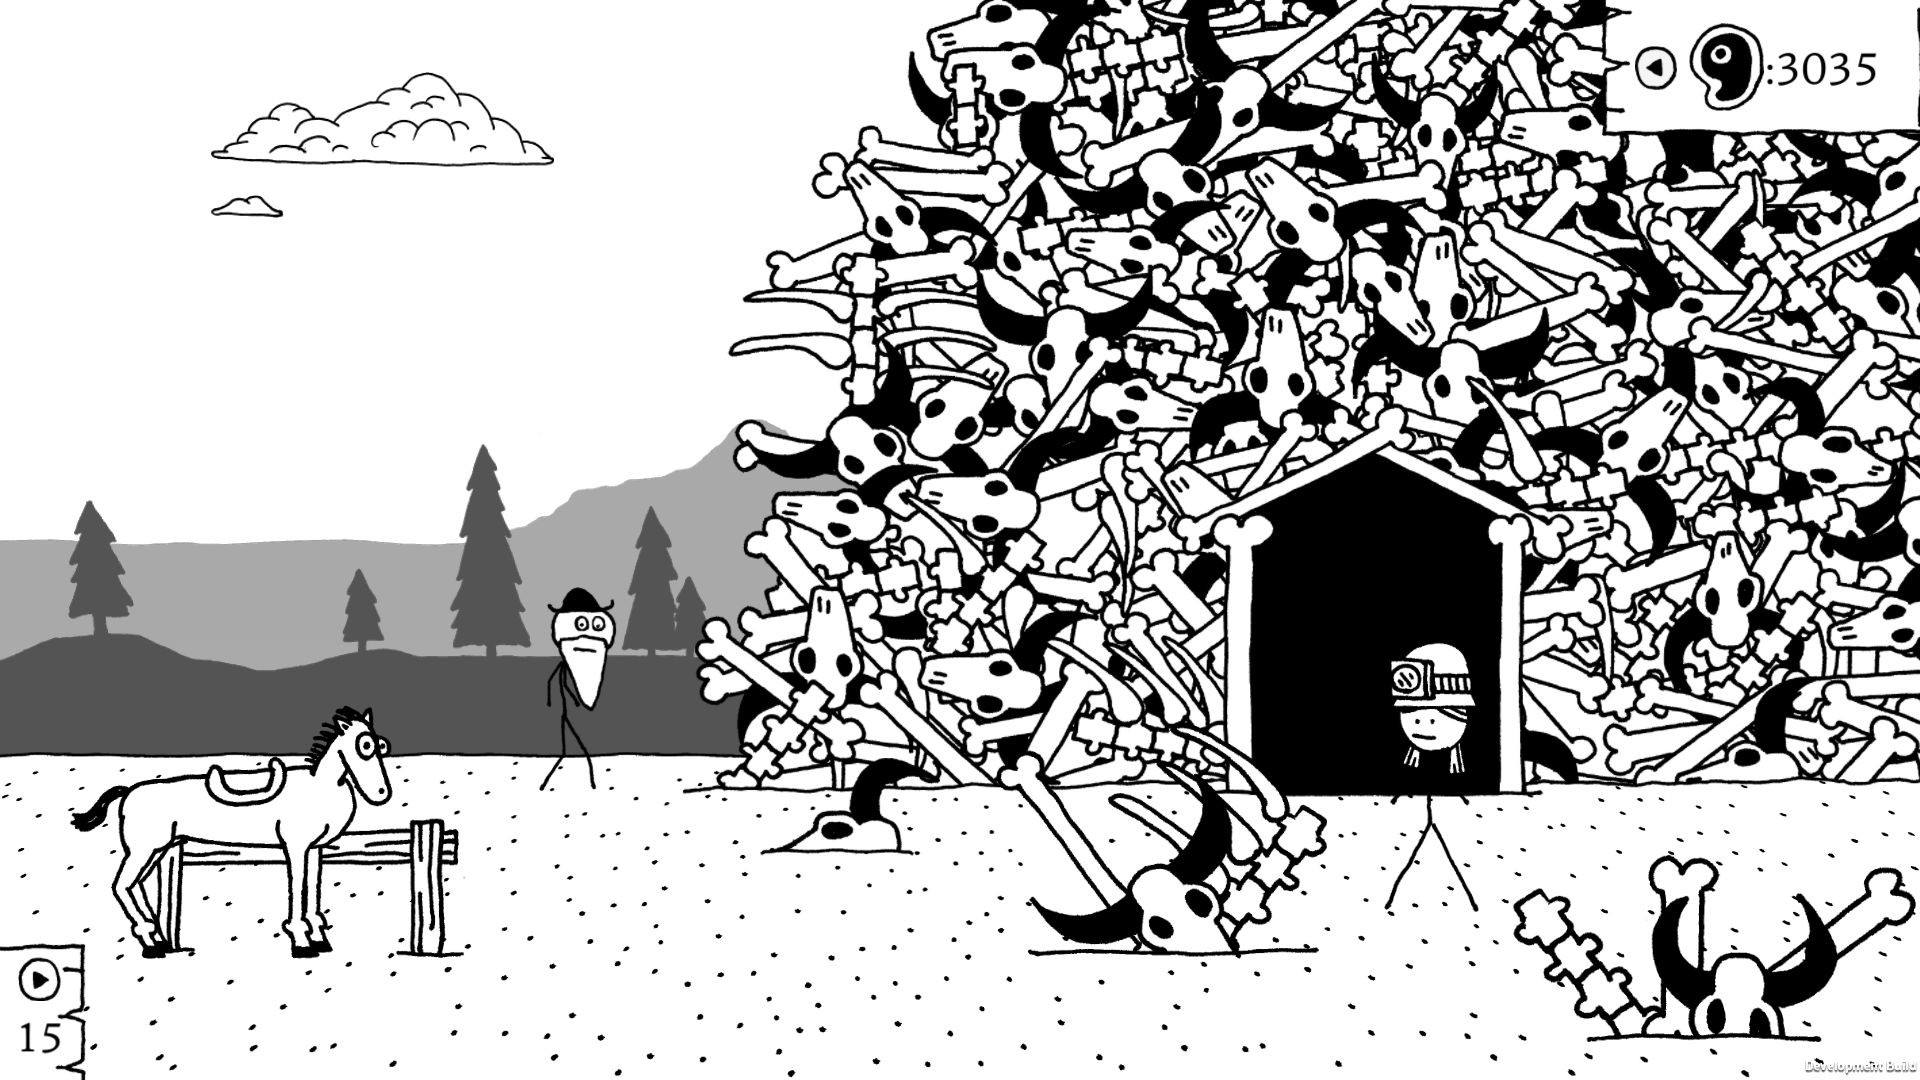 This screenshot from West of Loathing shows two characters standing in front of what appears to be a massive pile of buffalo bones. A horse also stands nearby.